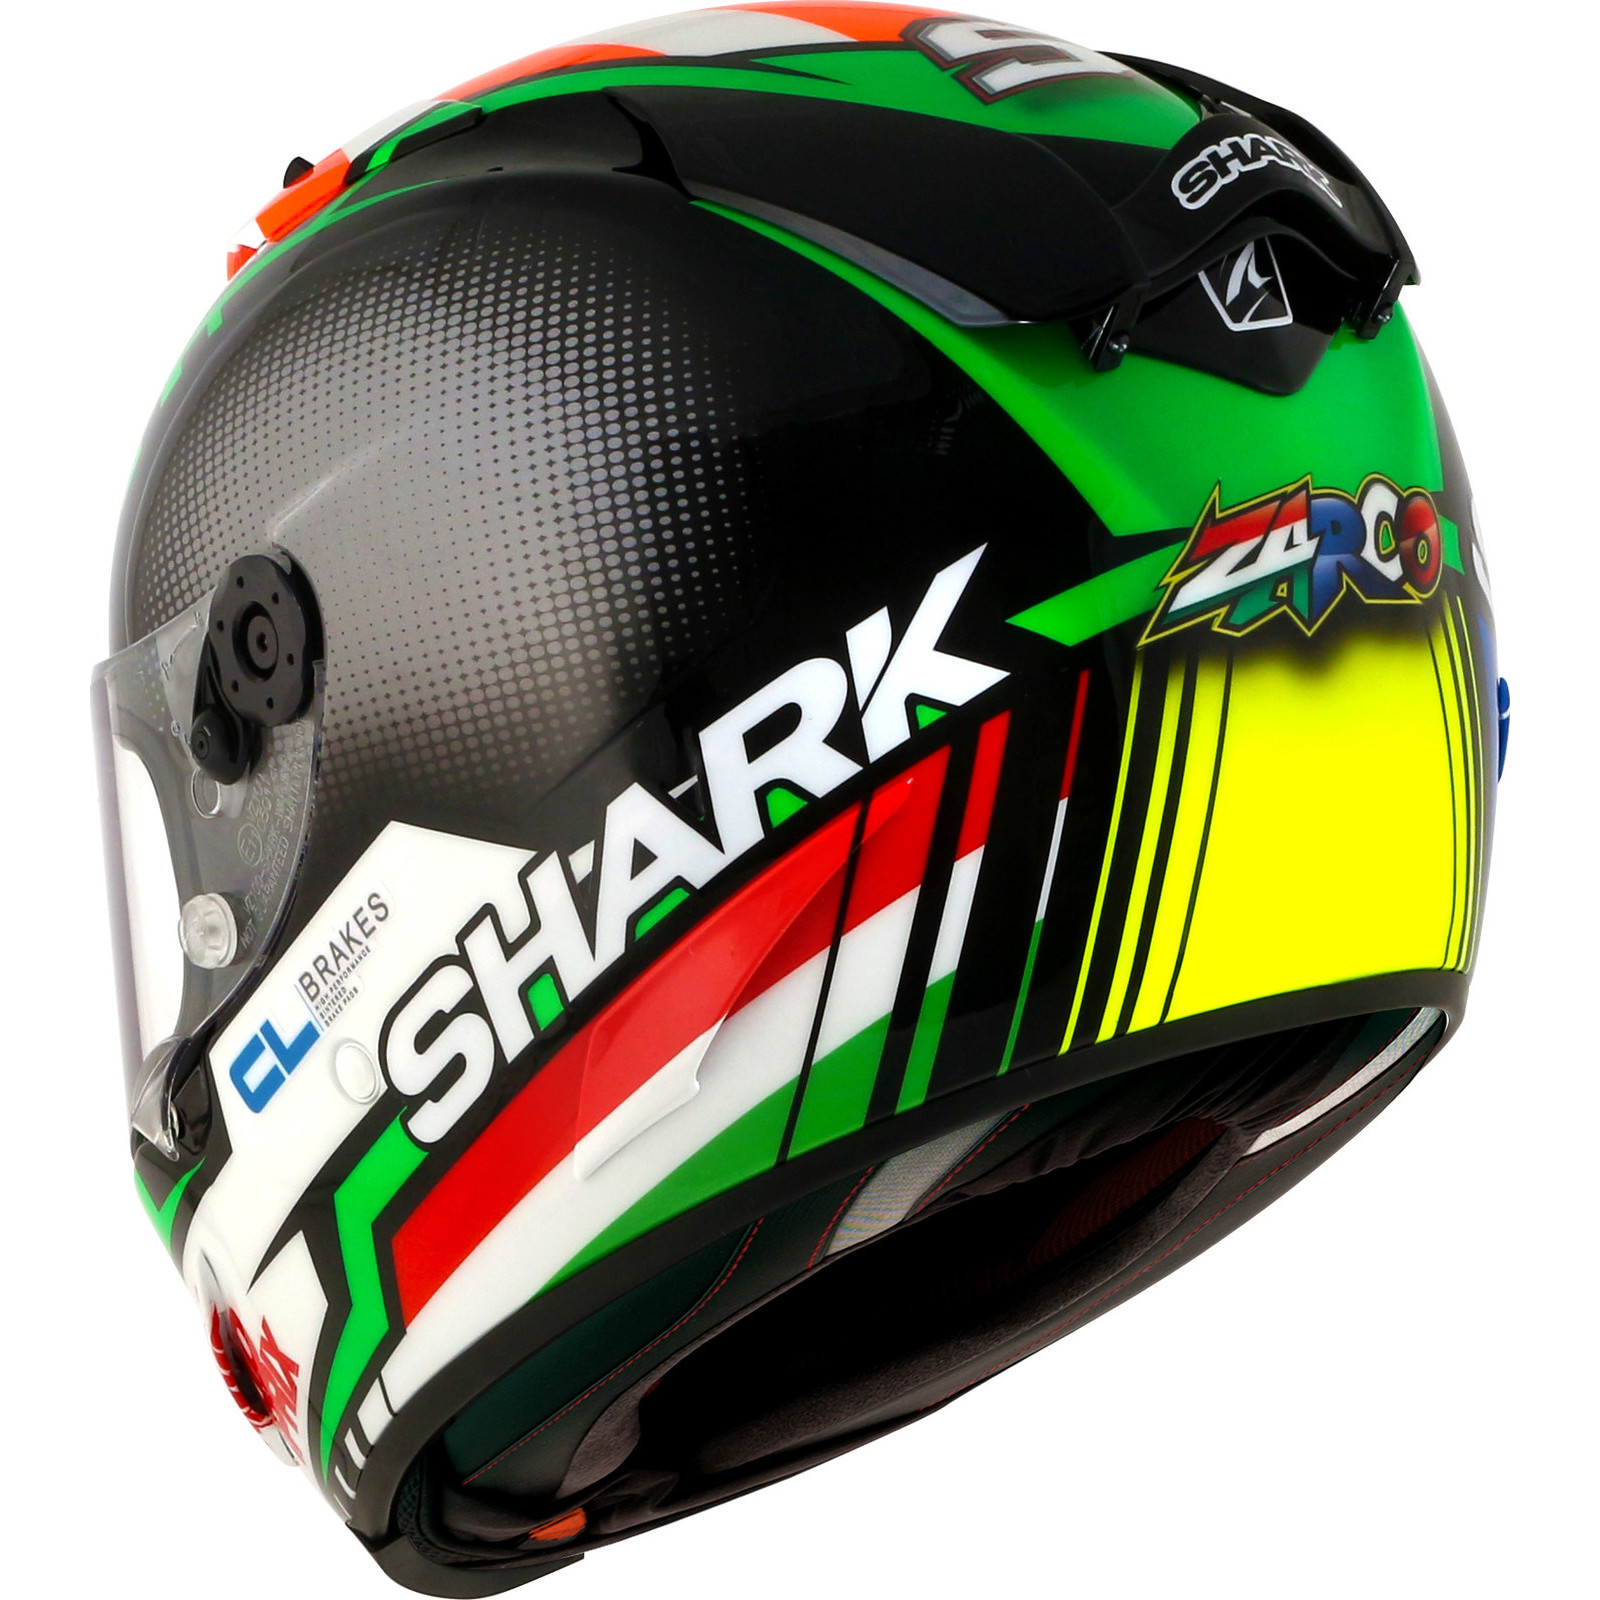 shark race r pro zarco black red green motorcycle helmet krg carbon replica ece ebay. Black Bedroom Furniture Sets. Home Design Ideas